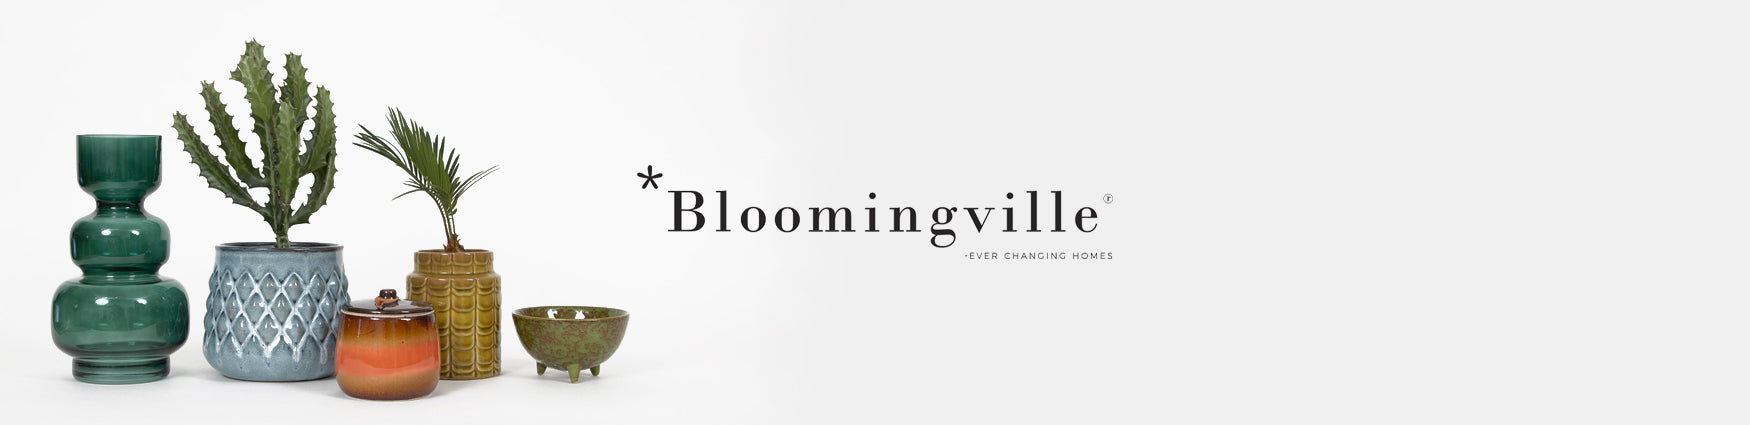 Bloomingville | Scandi inspired homeware available from Roo's Beach UK